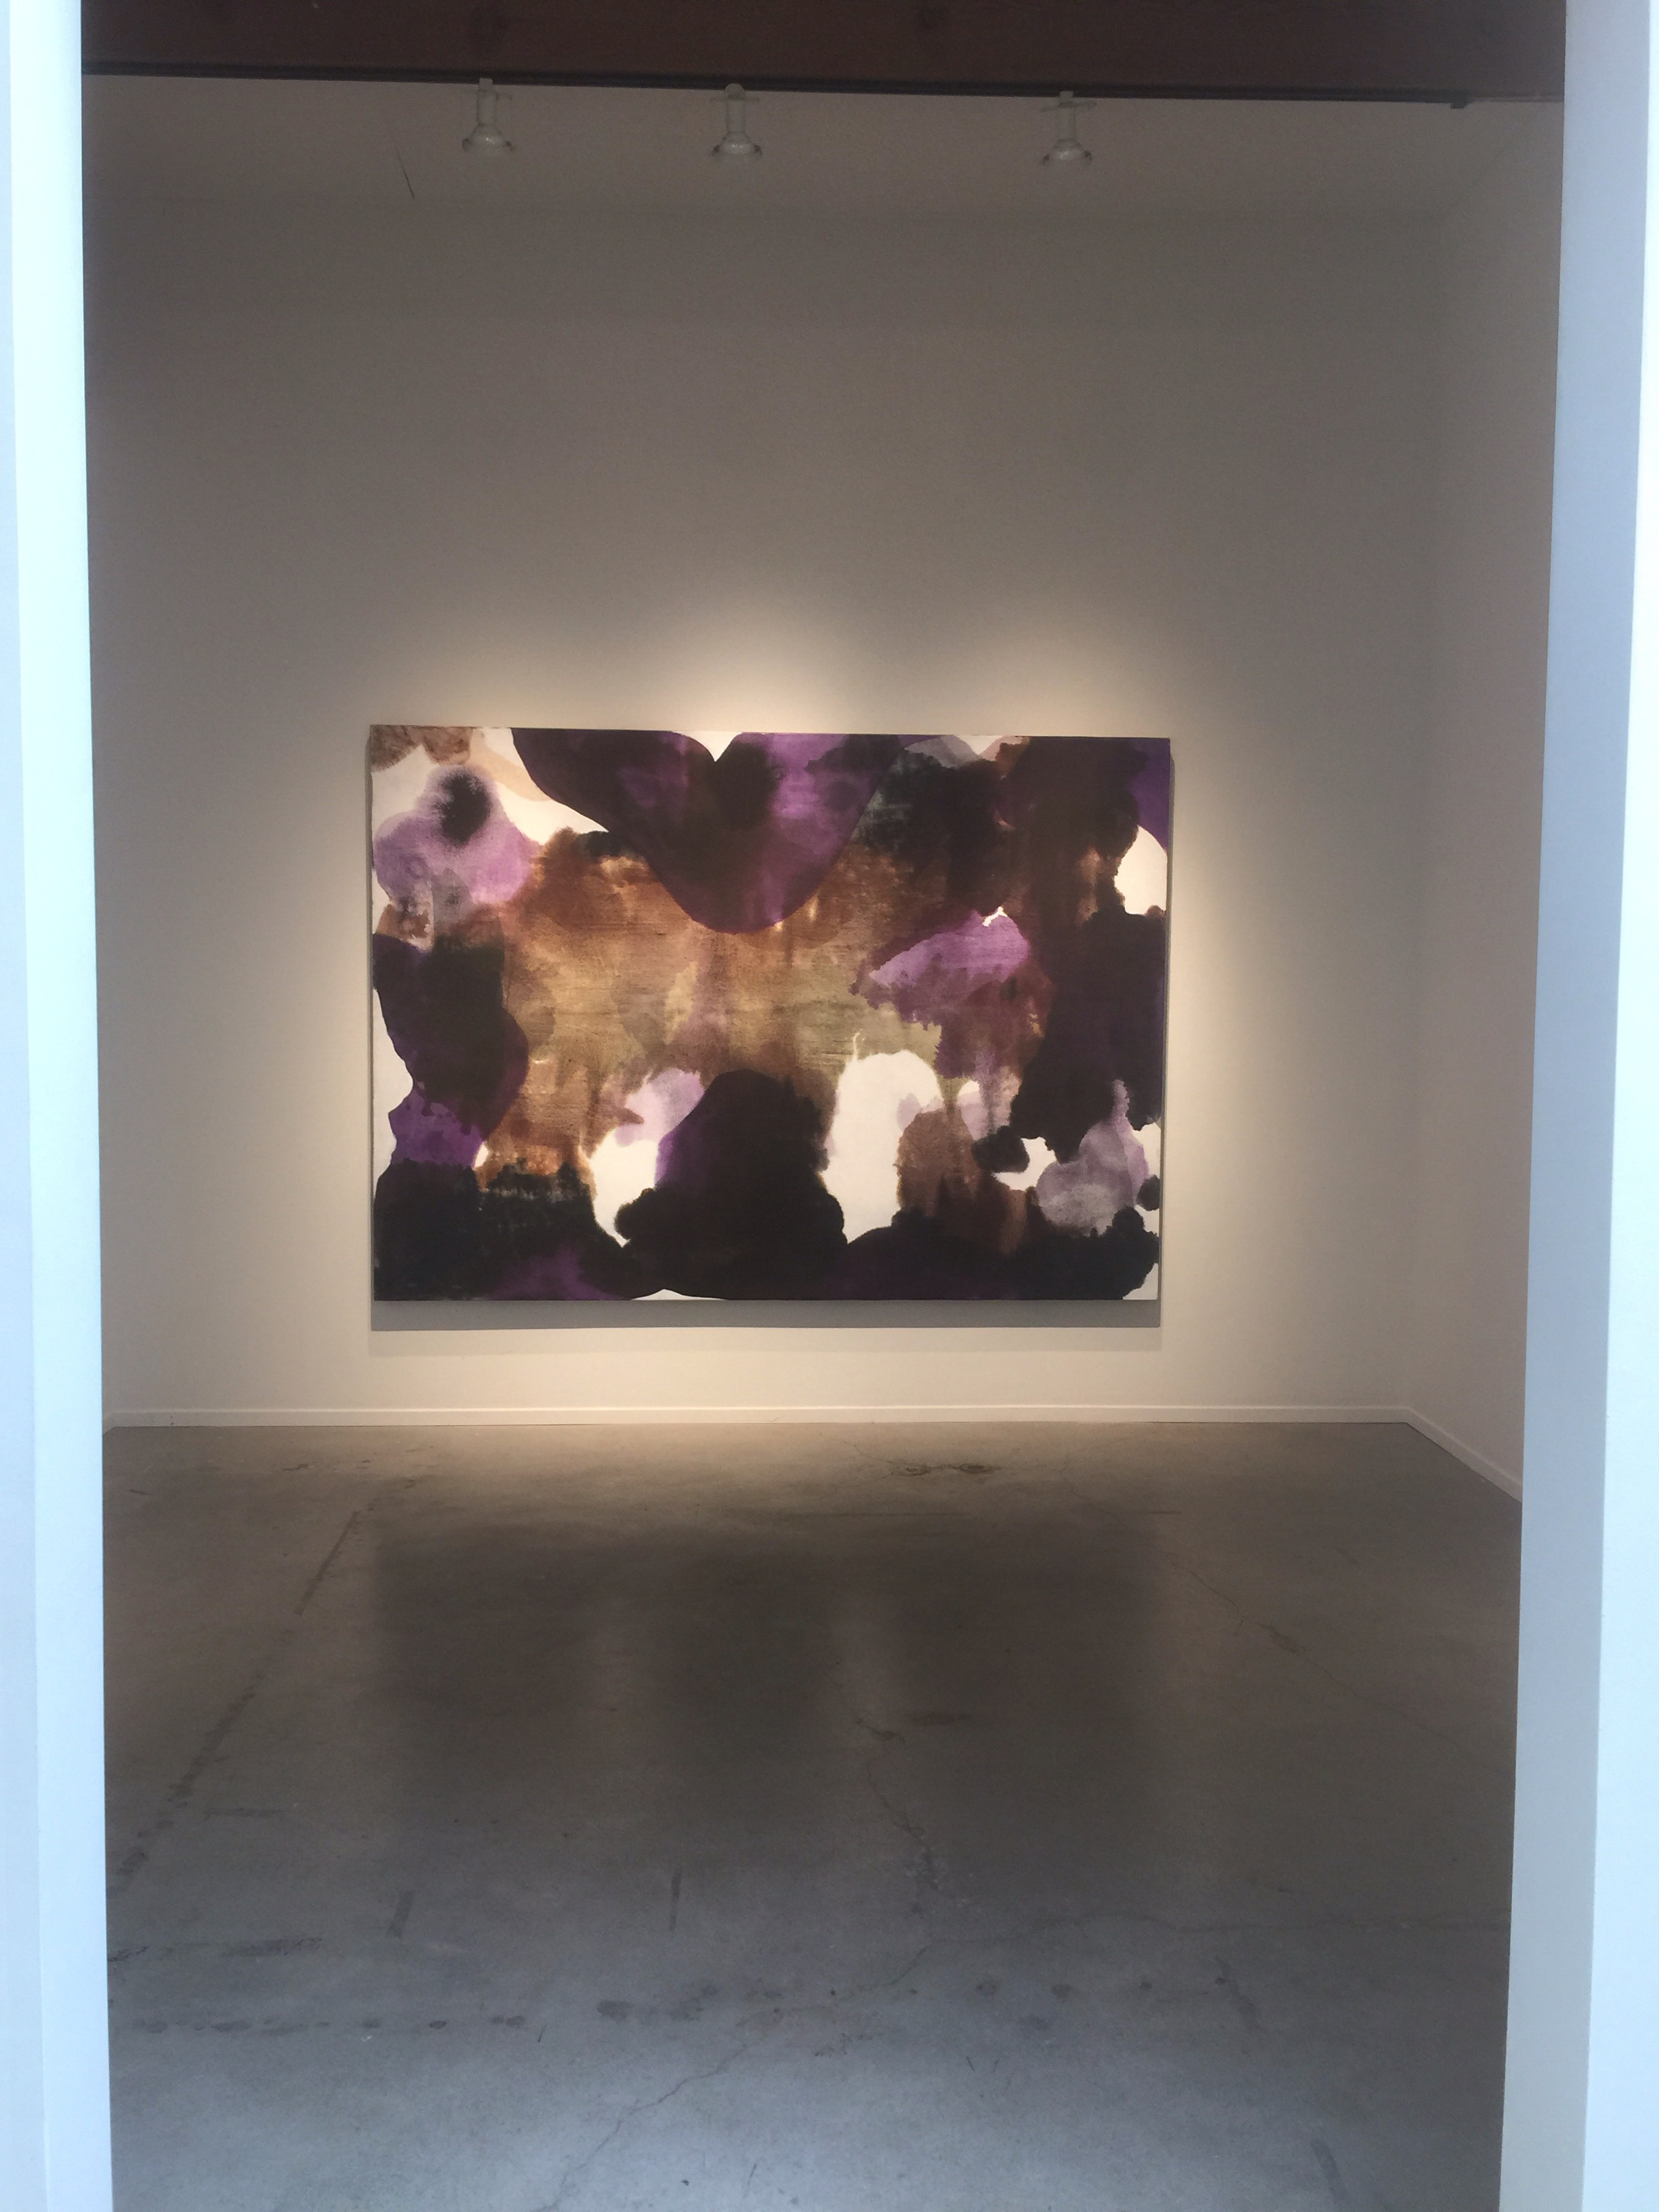 Antonio Murado now showing at Von Lintel Gallery in LA